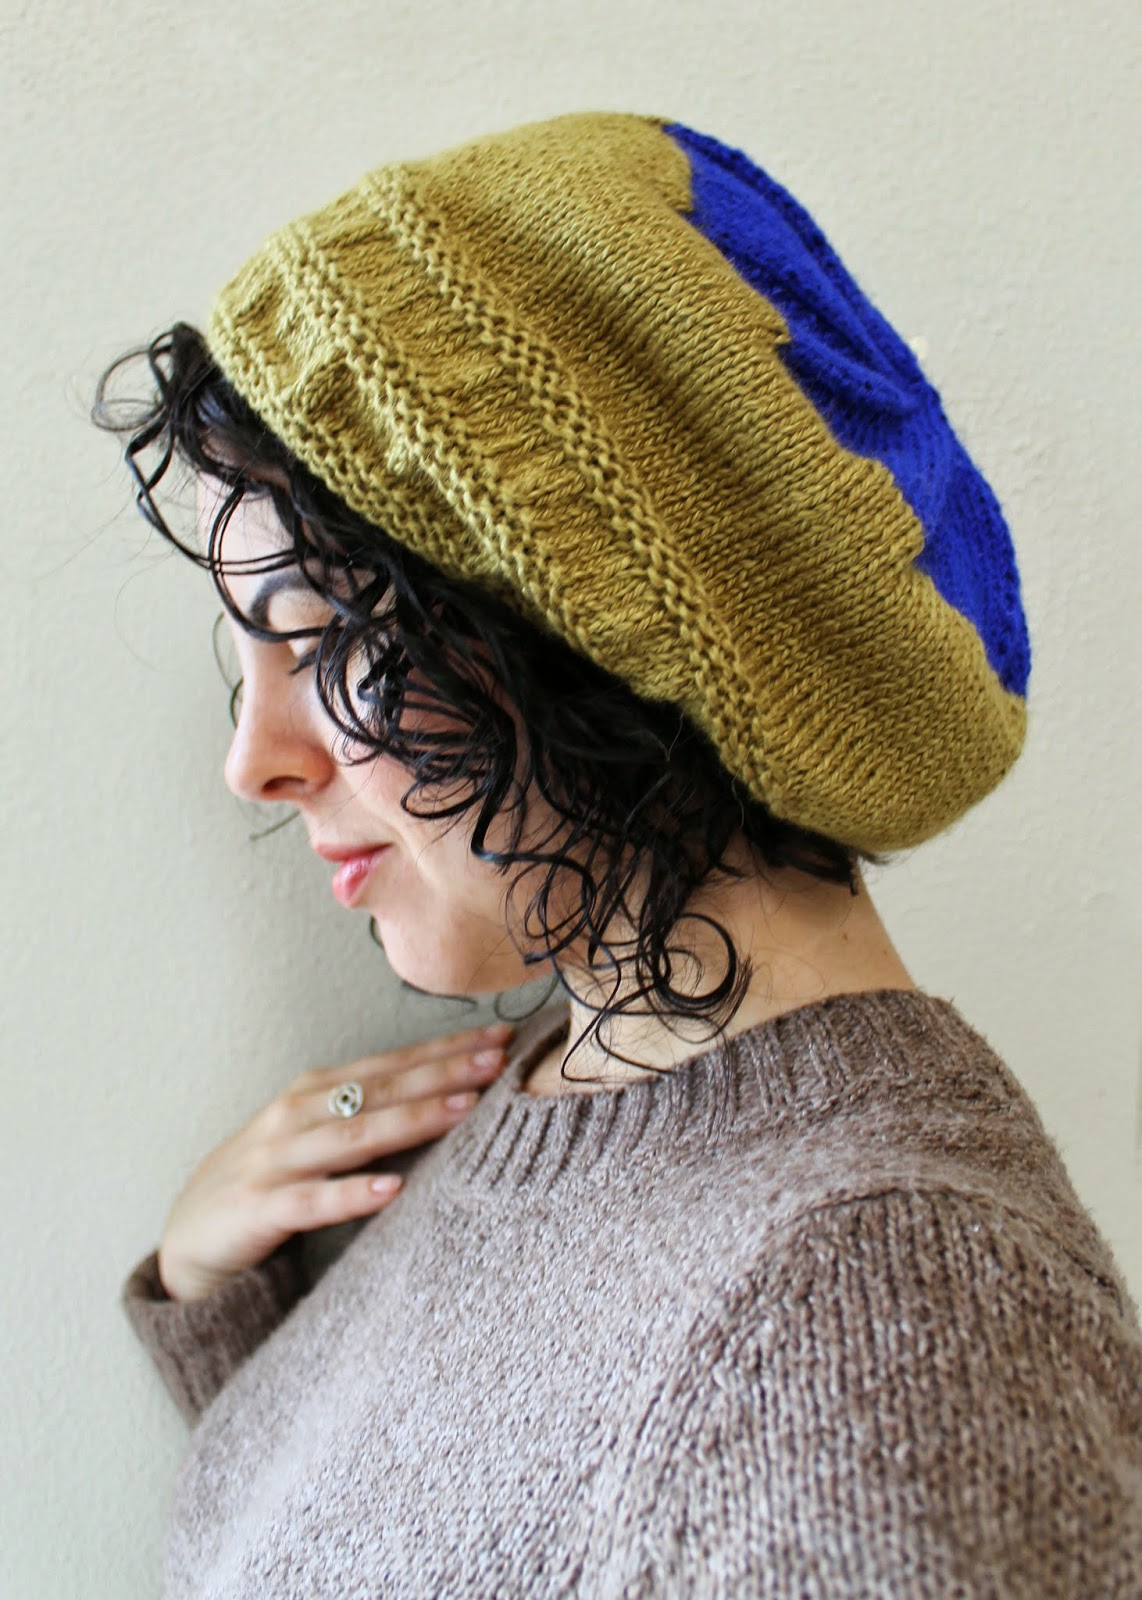 http://www.ravelry.com/projects/TheSexyKnitter/dianas-hat